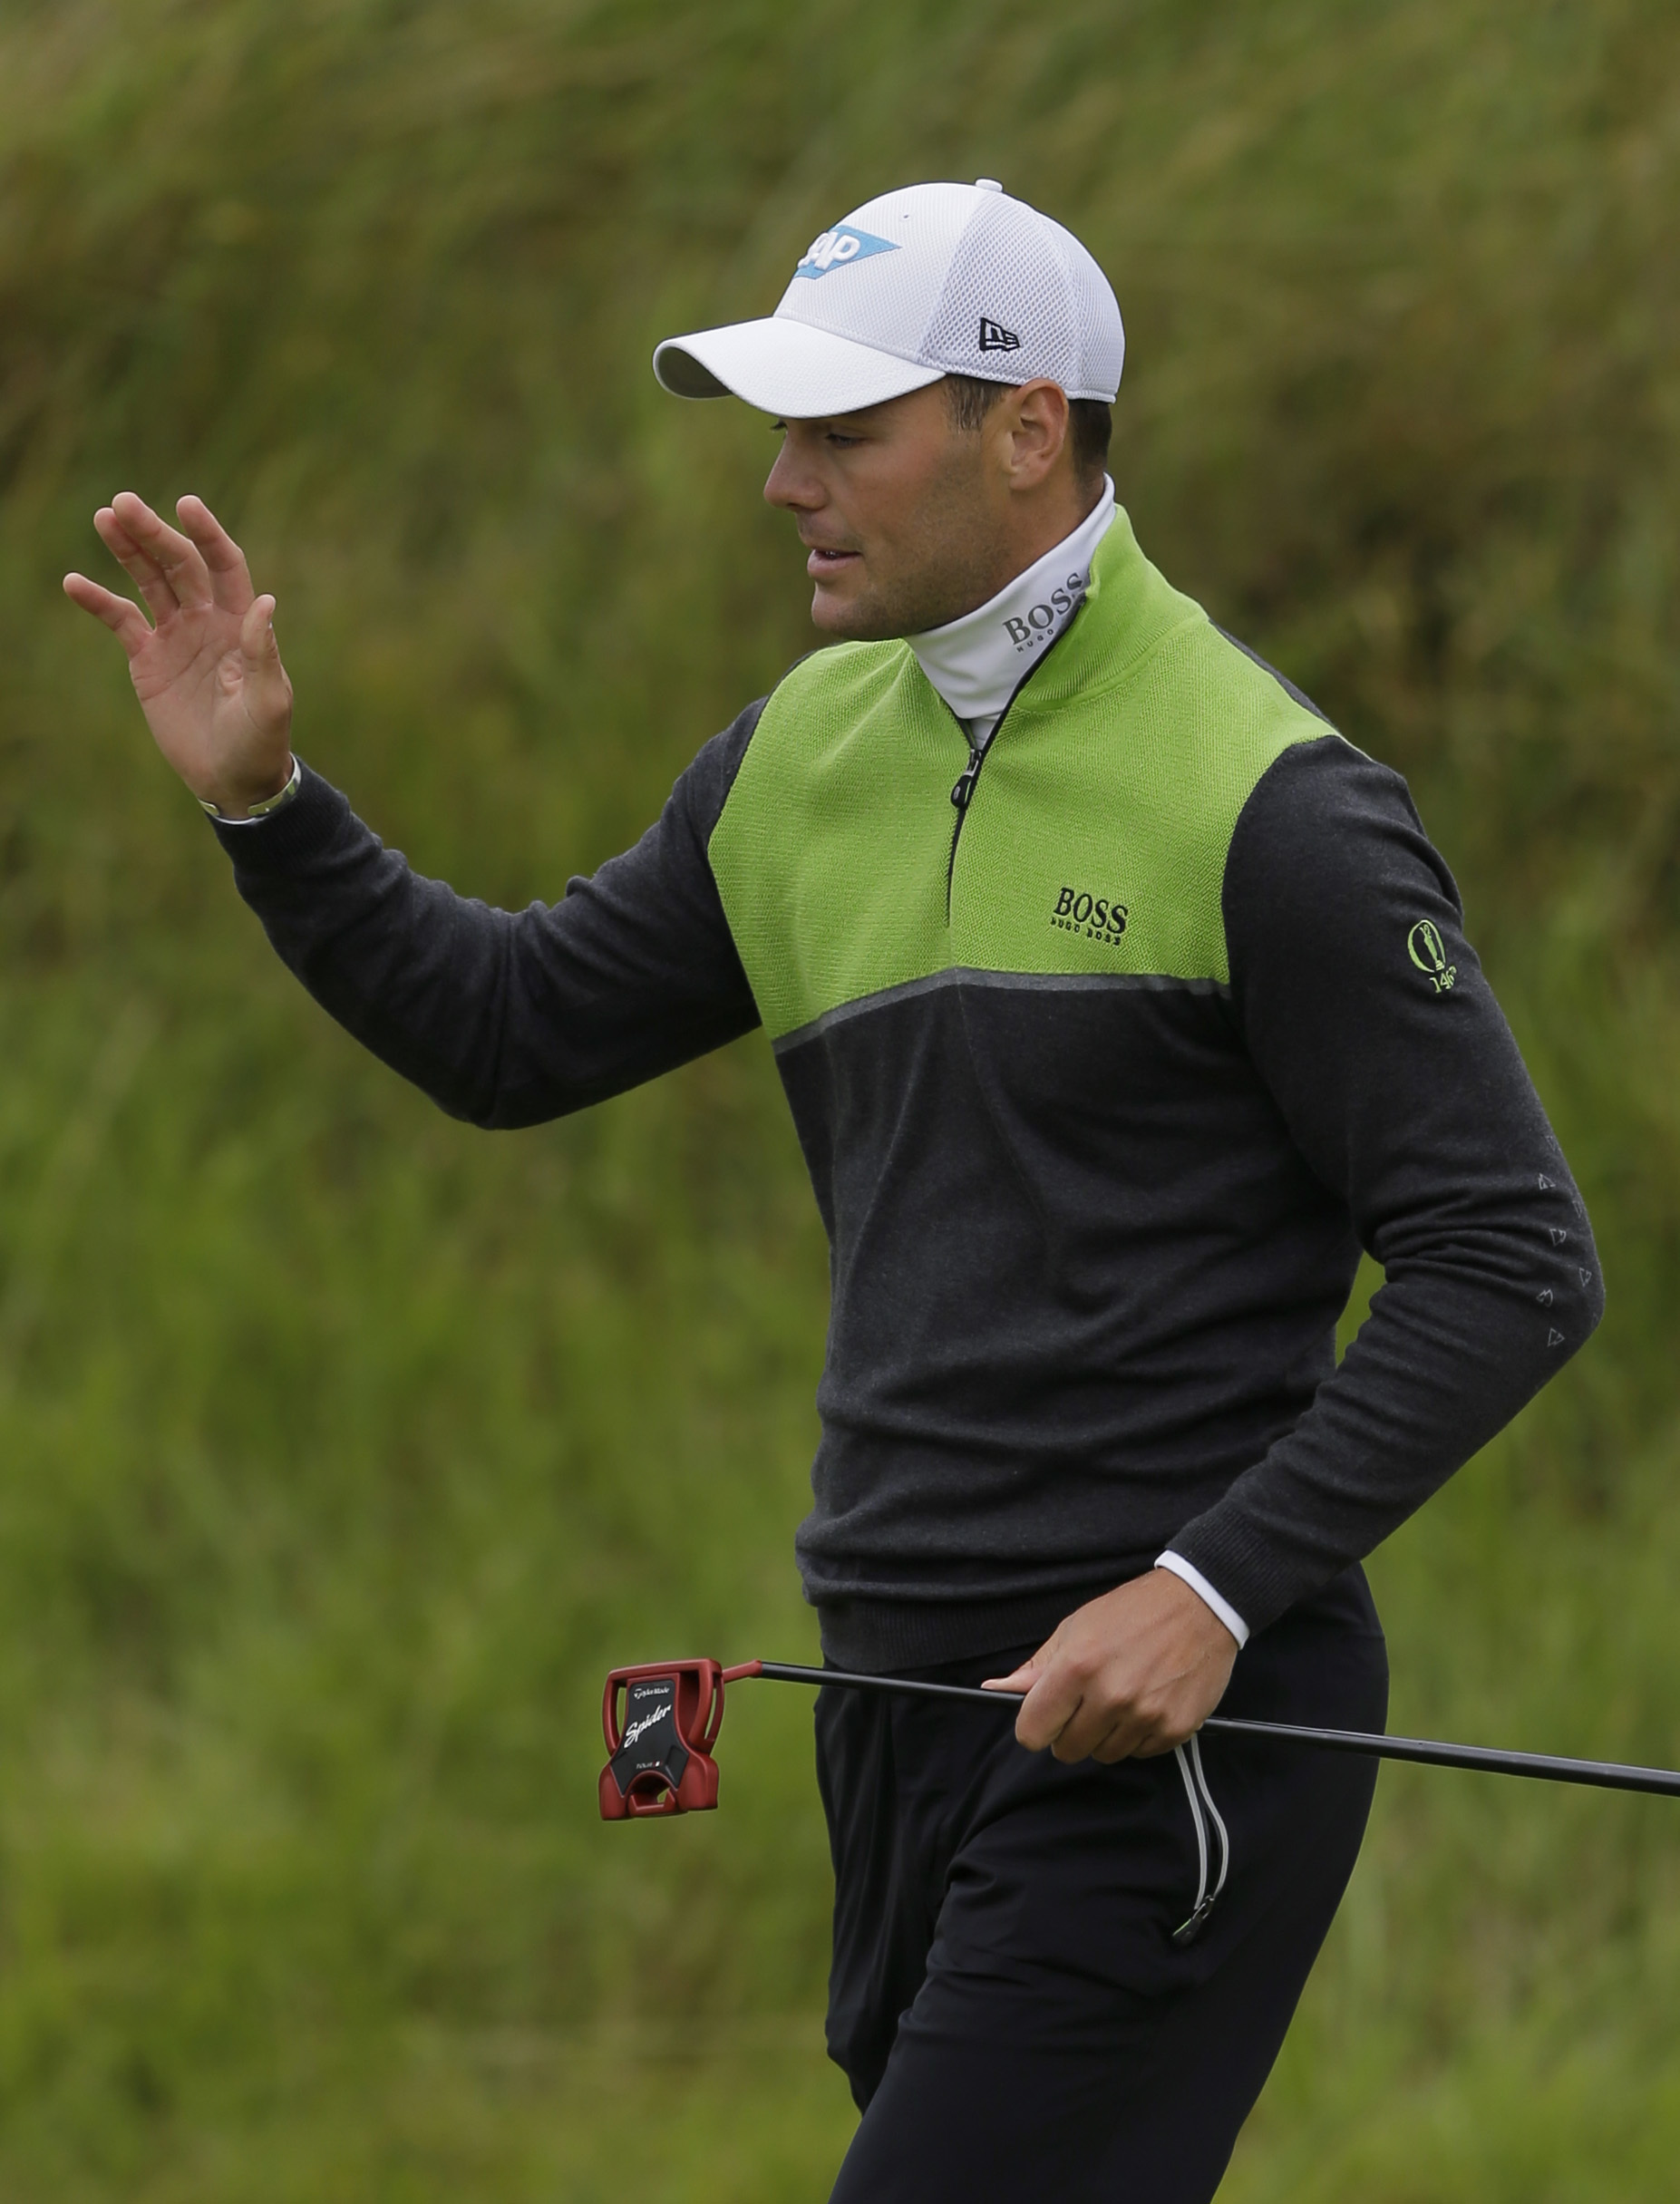 Martin Kaymer of Germany walks onto the 8th green during the second round of the British Open Golf Championship, at Royal Birkdale, Southport, England, FridayJuly 21, 2017. (AP Photo/Alastair Grant)